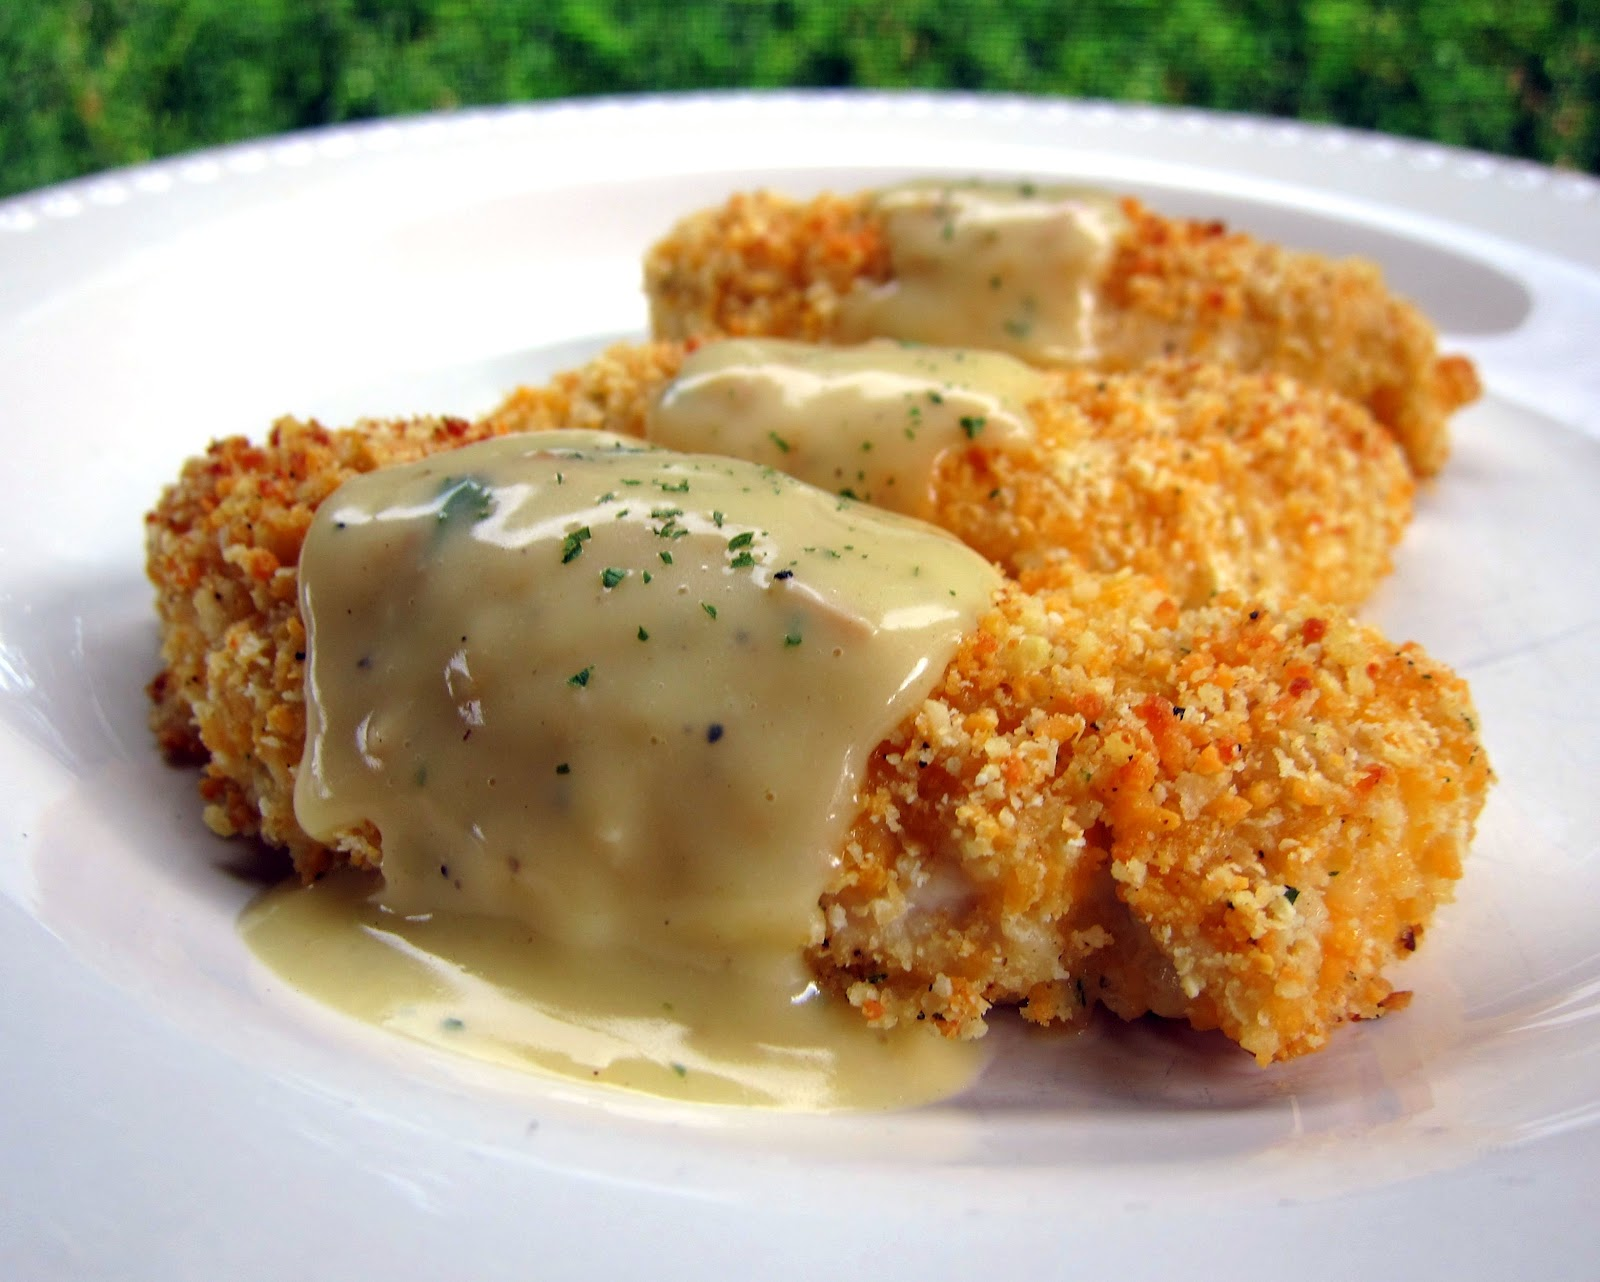 Crispy Cheddar Chicken Tenders Recipe - chicken tenders coated in ...